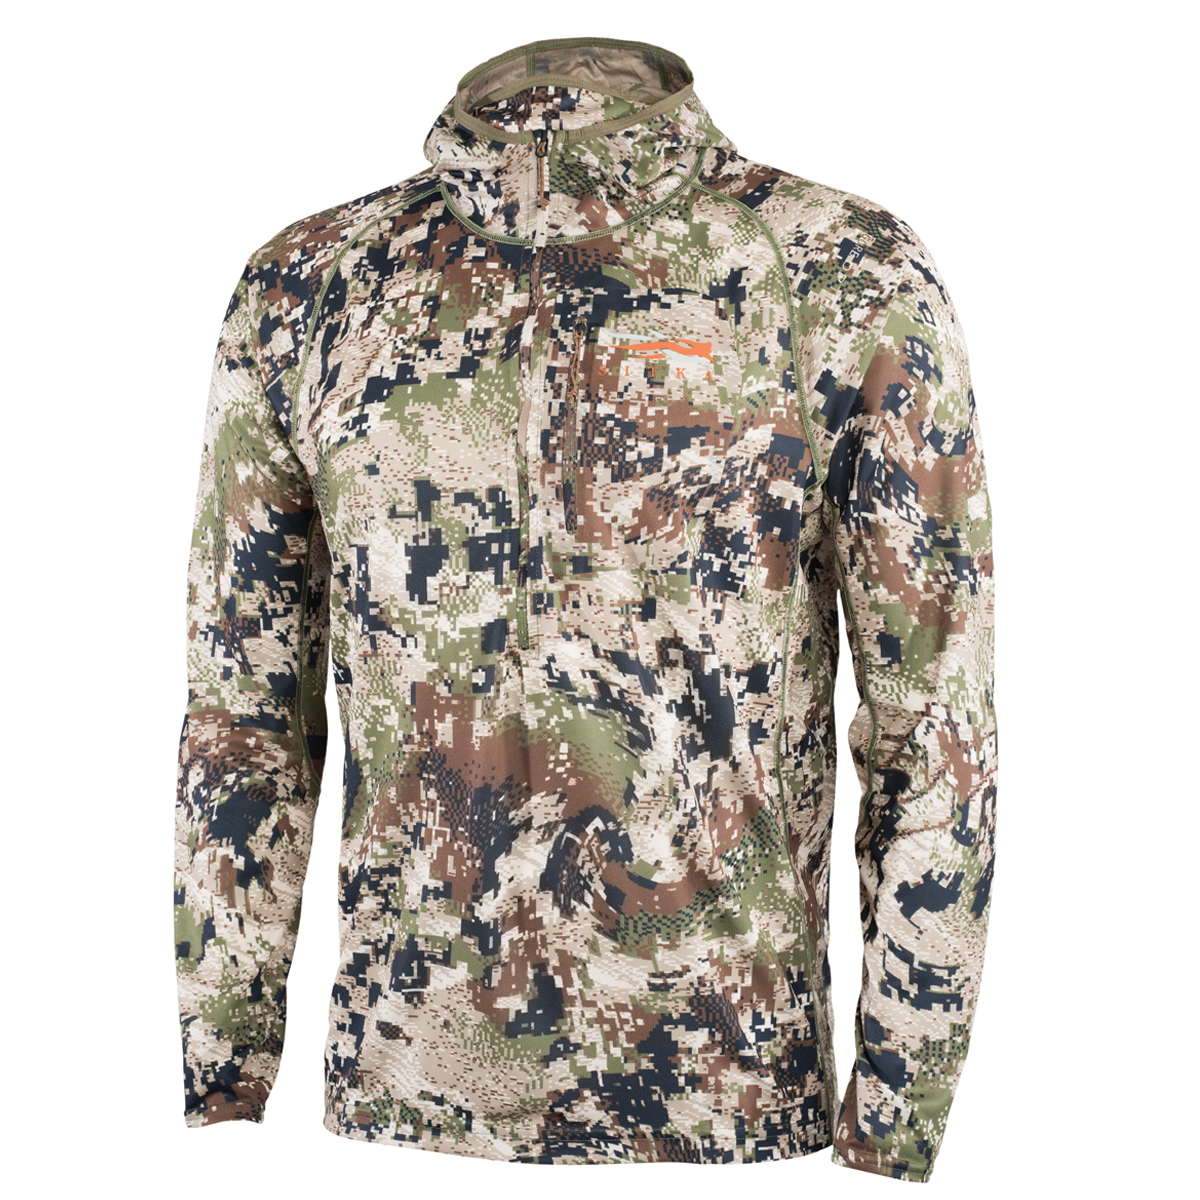 The SITKA Core Lightweight Hoody in Subalpine